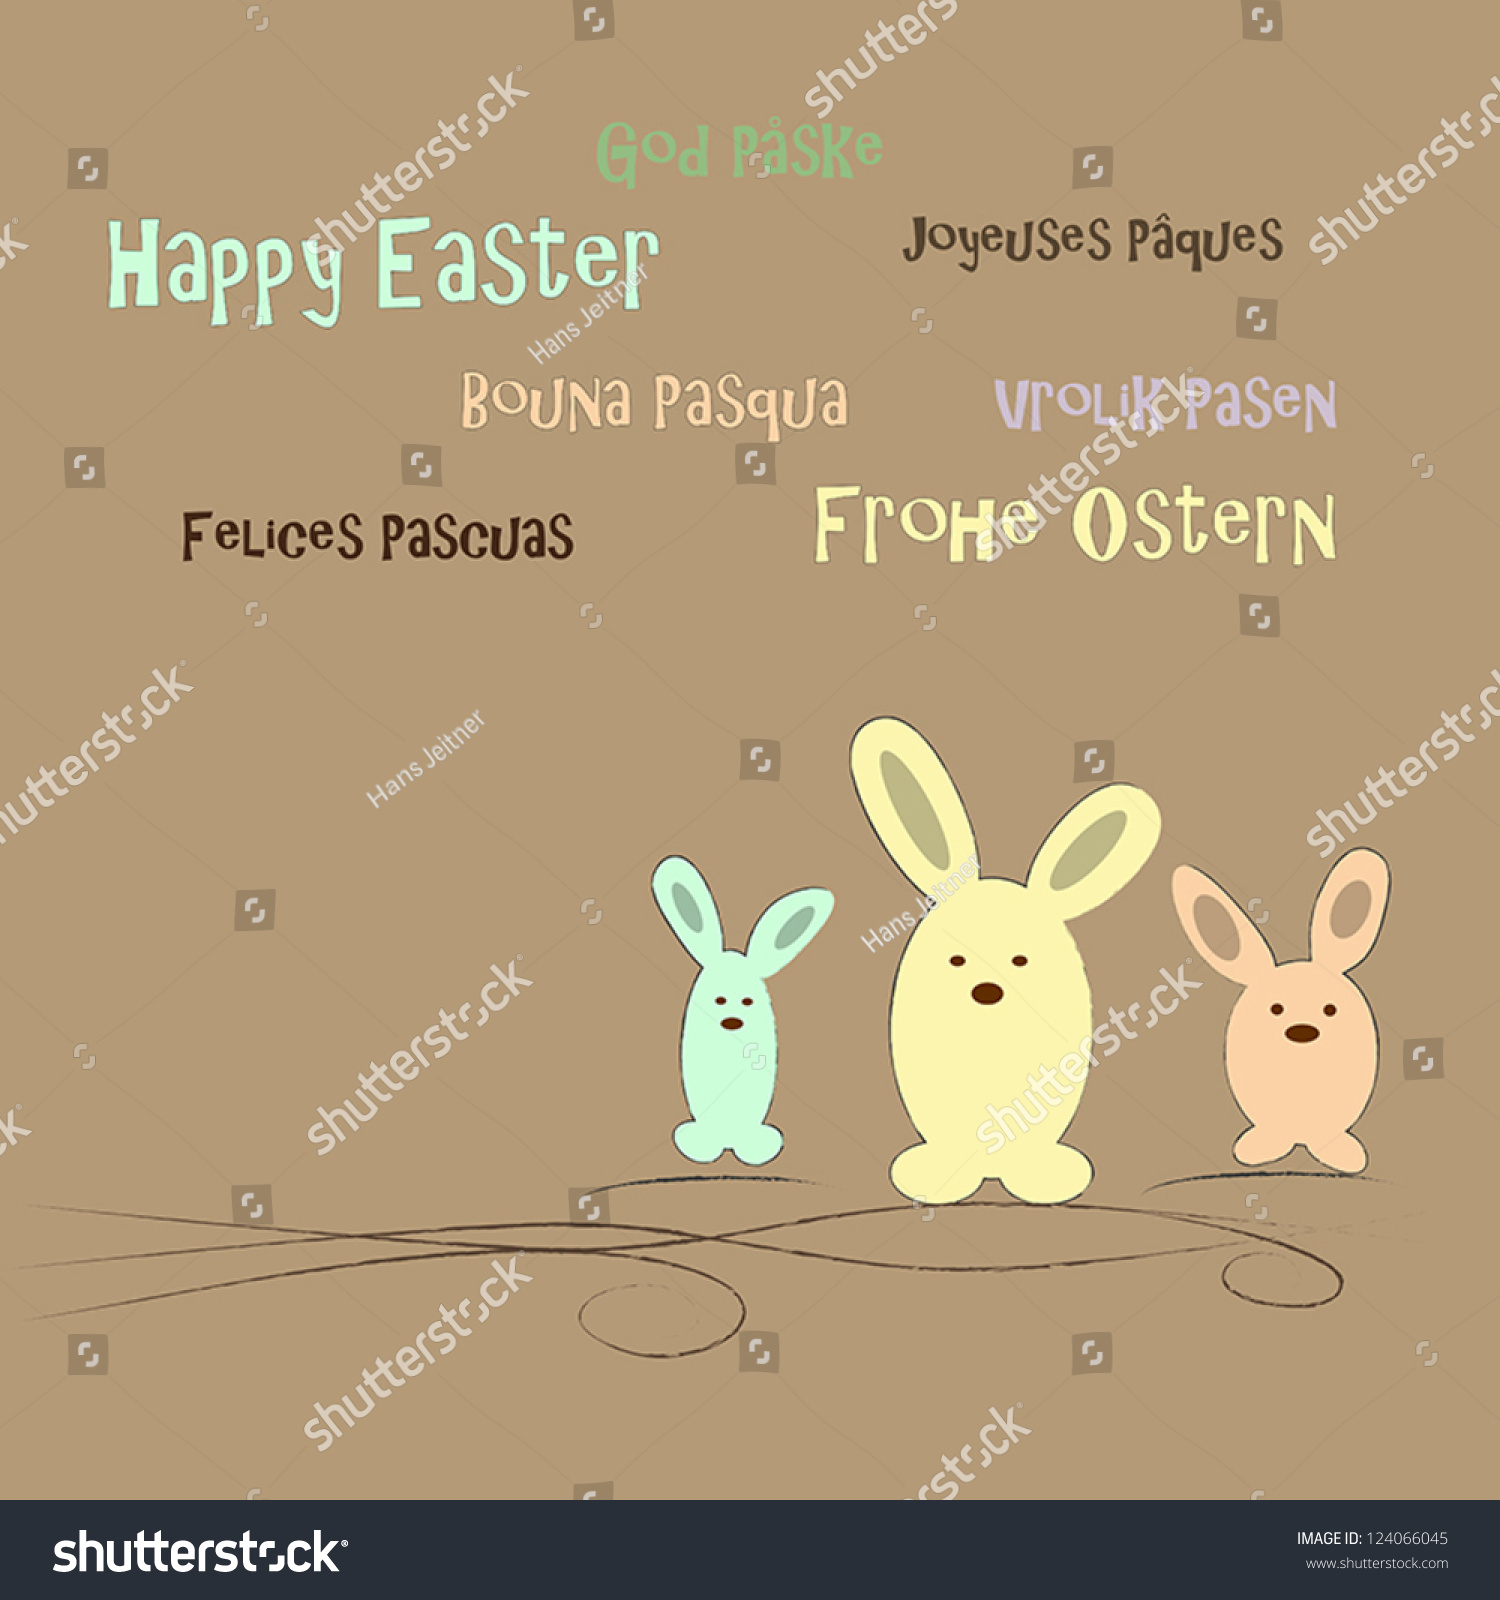 Easter greeting different languages stock vector 124066045 easter greeting in different languages kristyandbryce Gallery